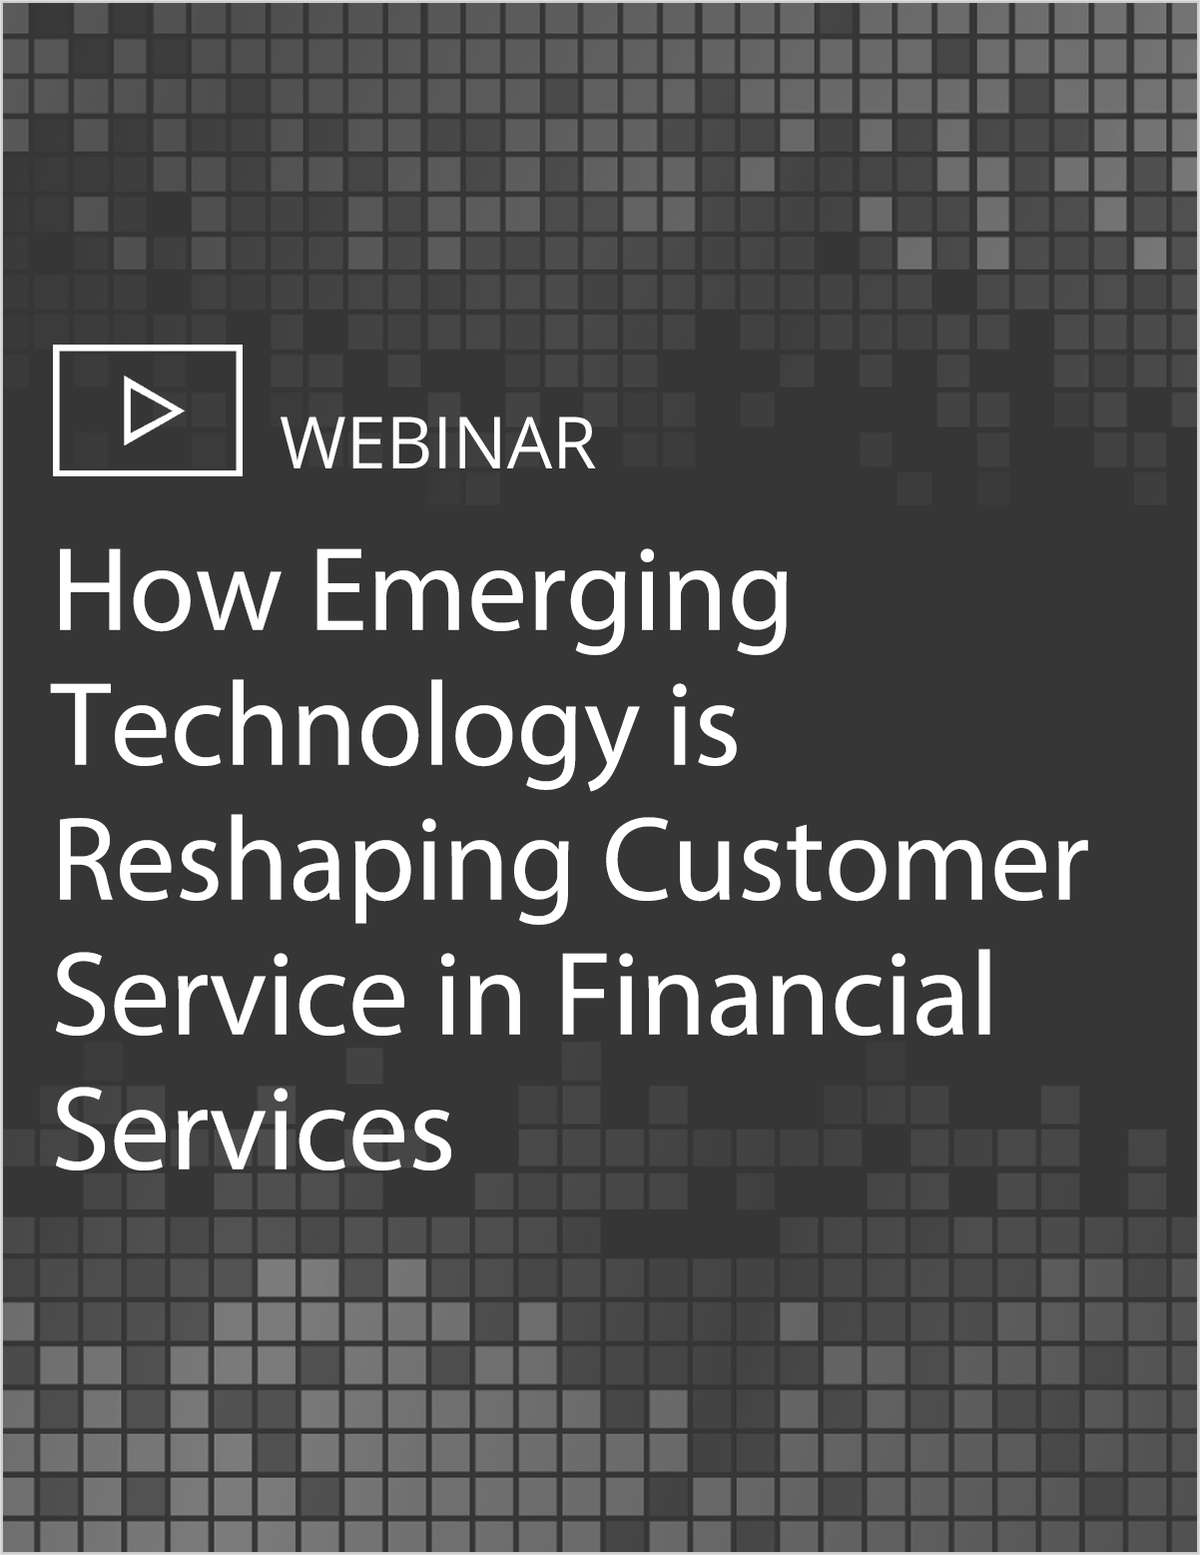 How Emerging Technology is Reshaping Customer Service in Financial Services